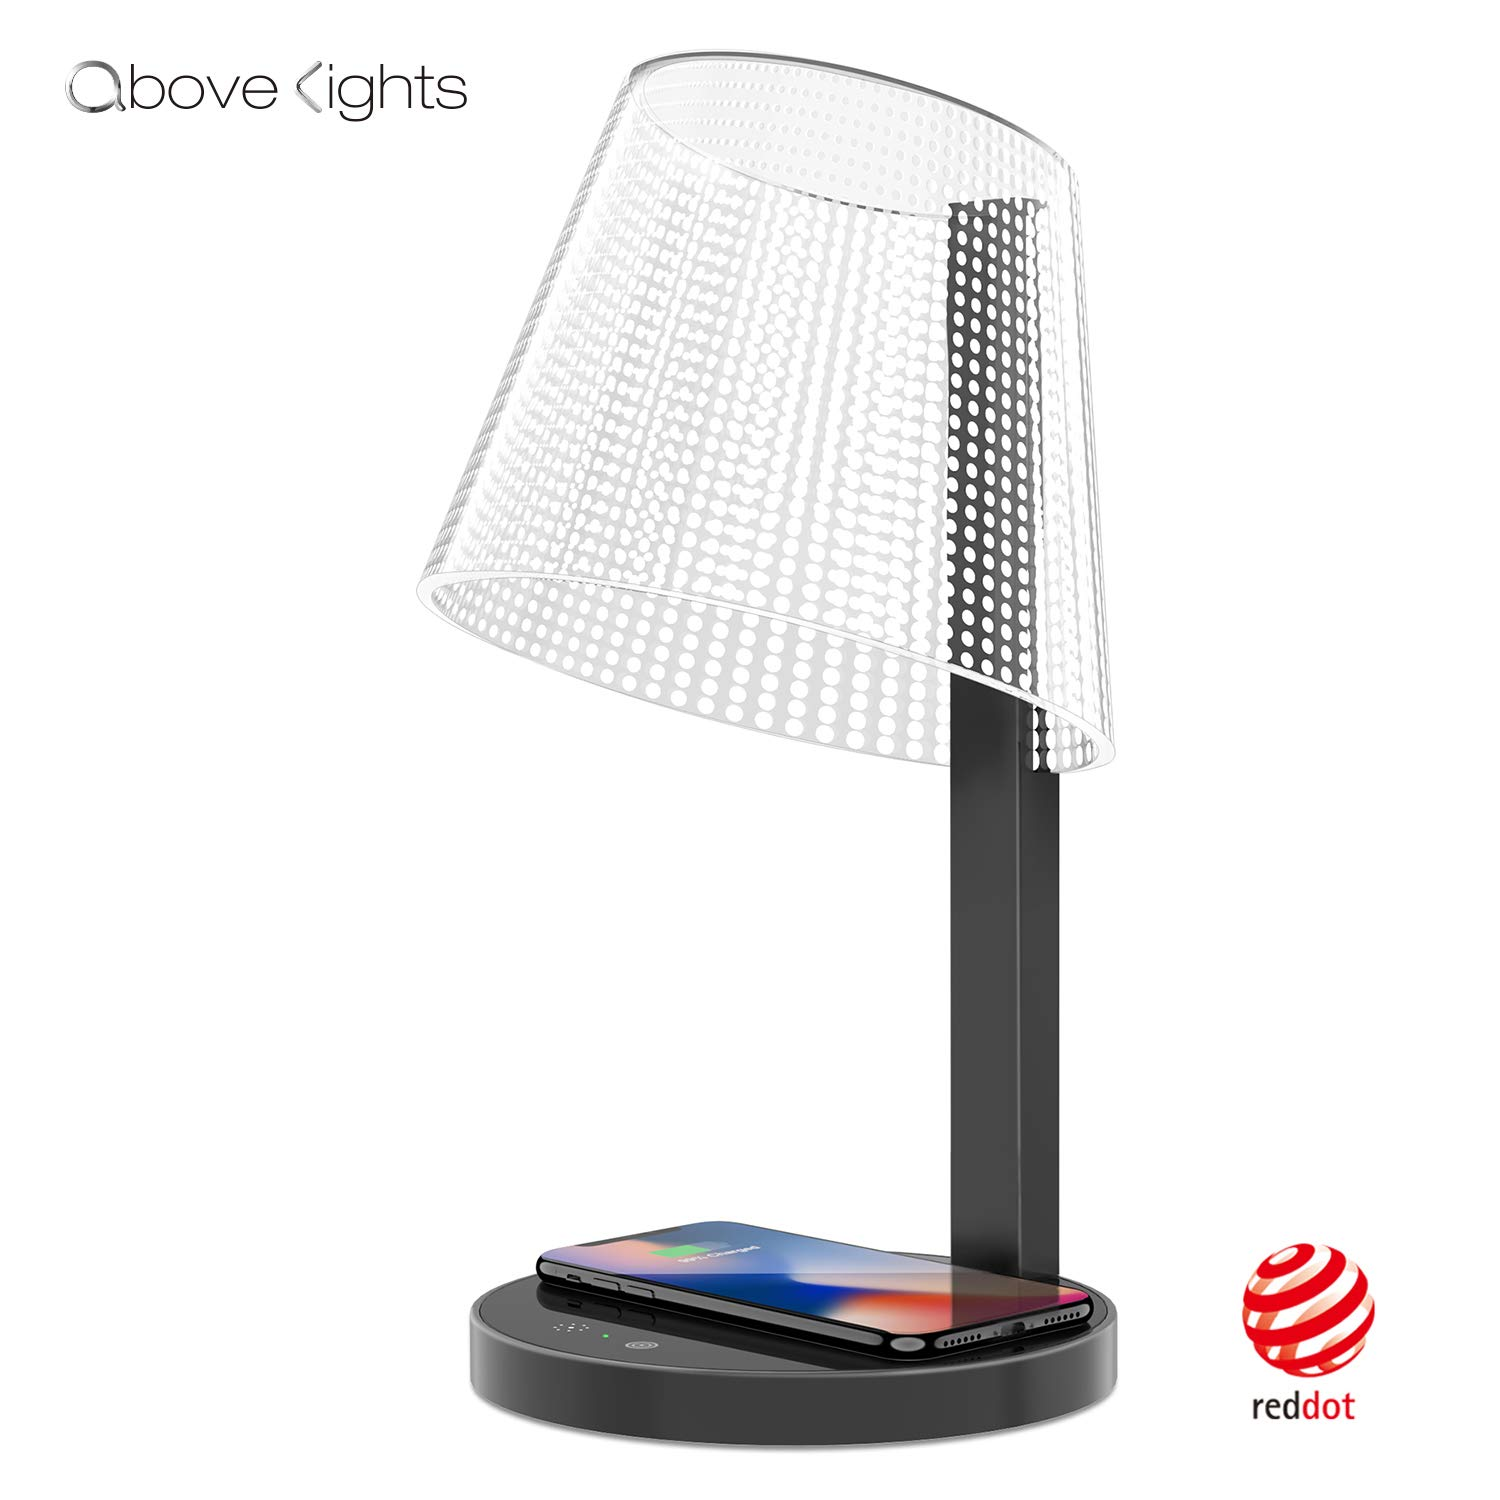 LED Table Lamp, Above Lights 7W Office Dimmable Desk Light with 10W Wireless Charger, Infrared Switch, Hidden Light Source, 5 Colors & Brightness, and USB Charging Port- Reddot Design Award by Above Lights (Image #1)